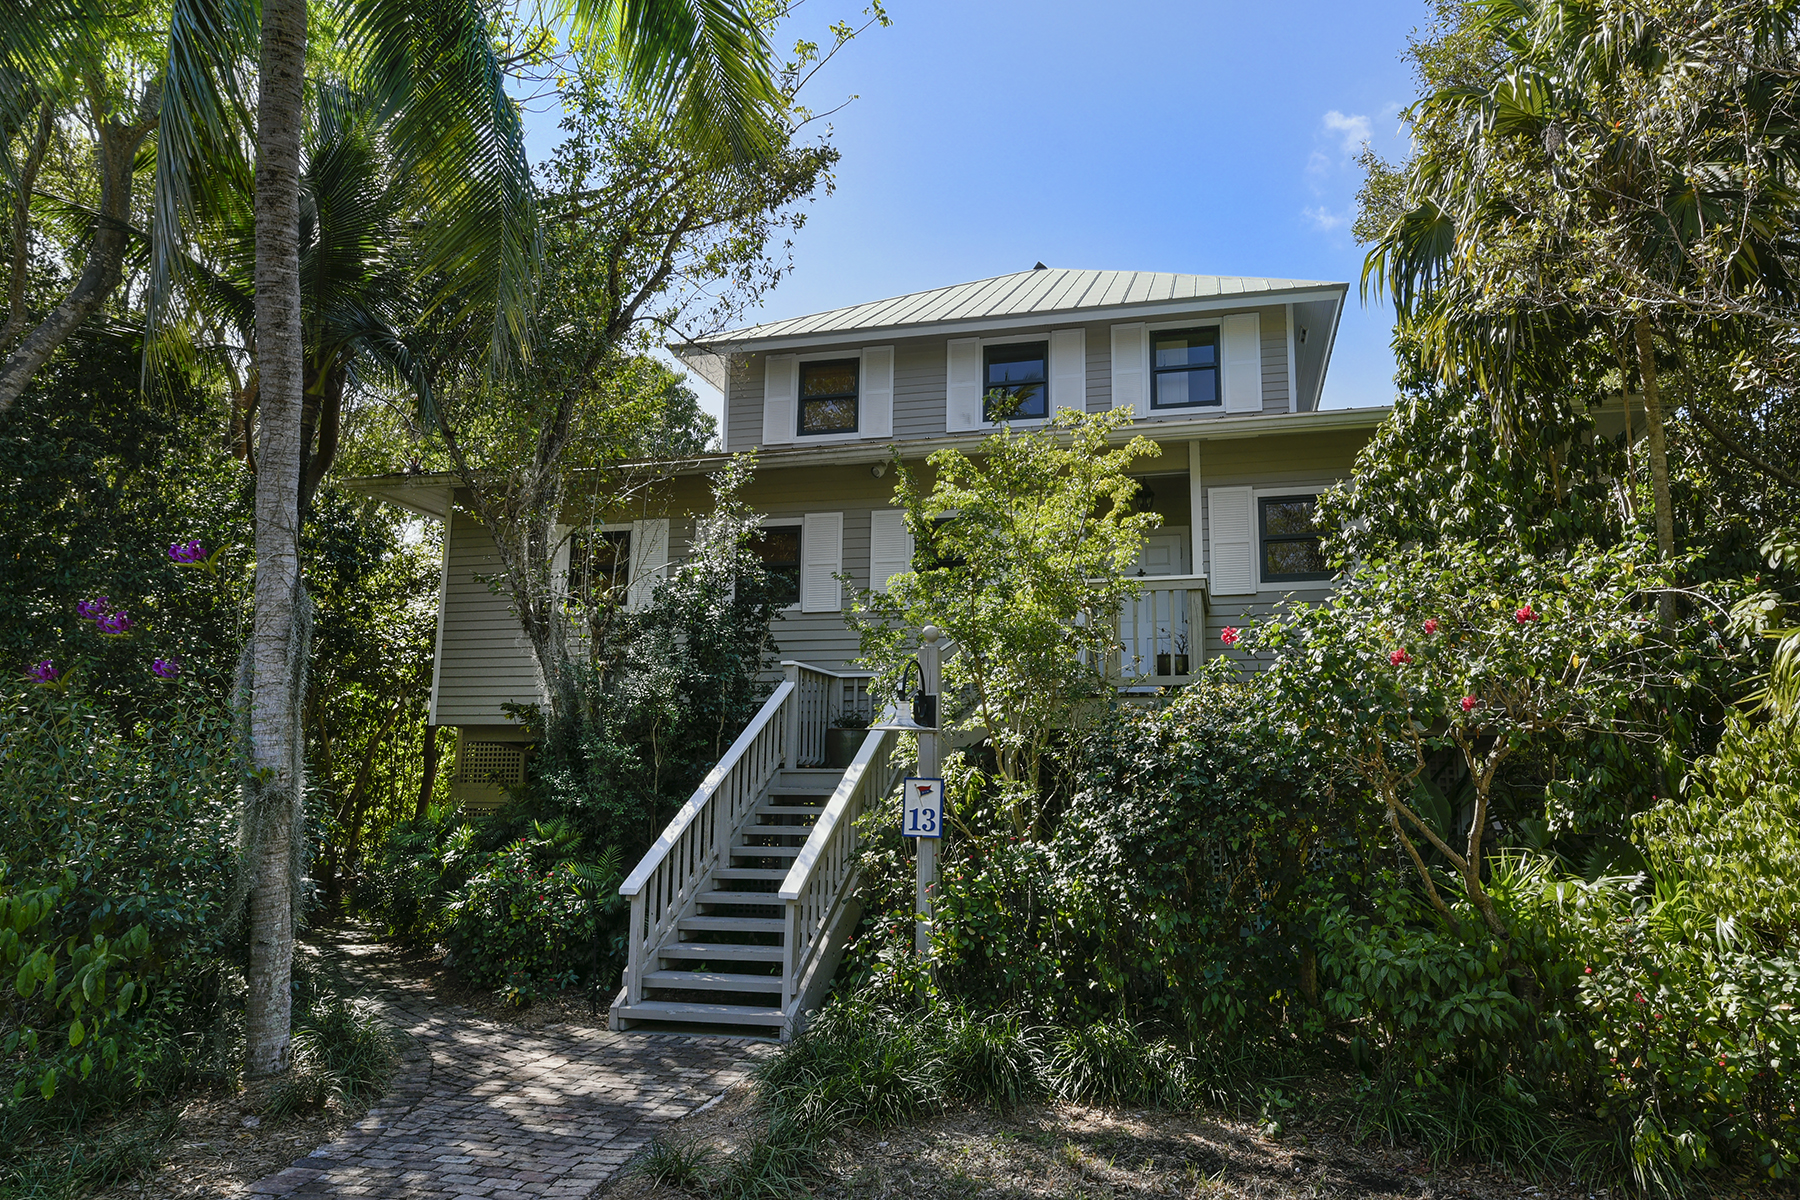 Additional photo for property listing at Waterfront Cottage - Key Largo Anglers Club 13 South Marina Drive Key Largo, Florida 33037 Estados Unidos